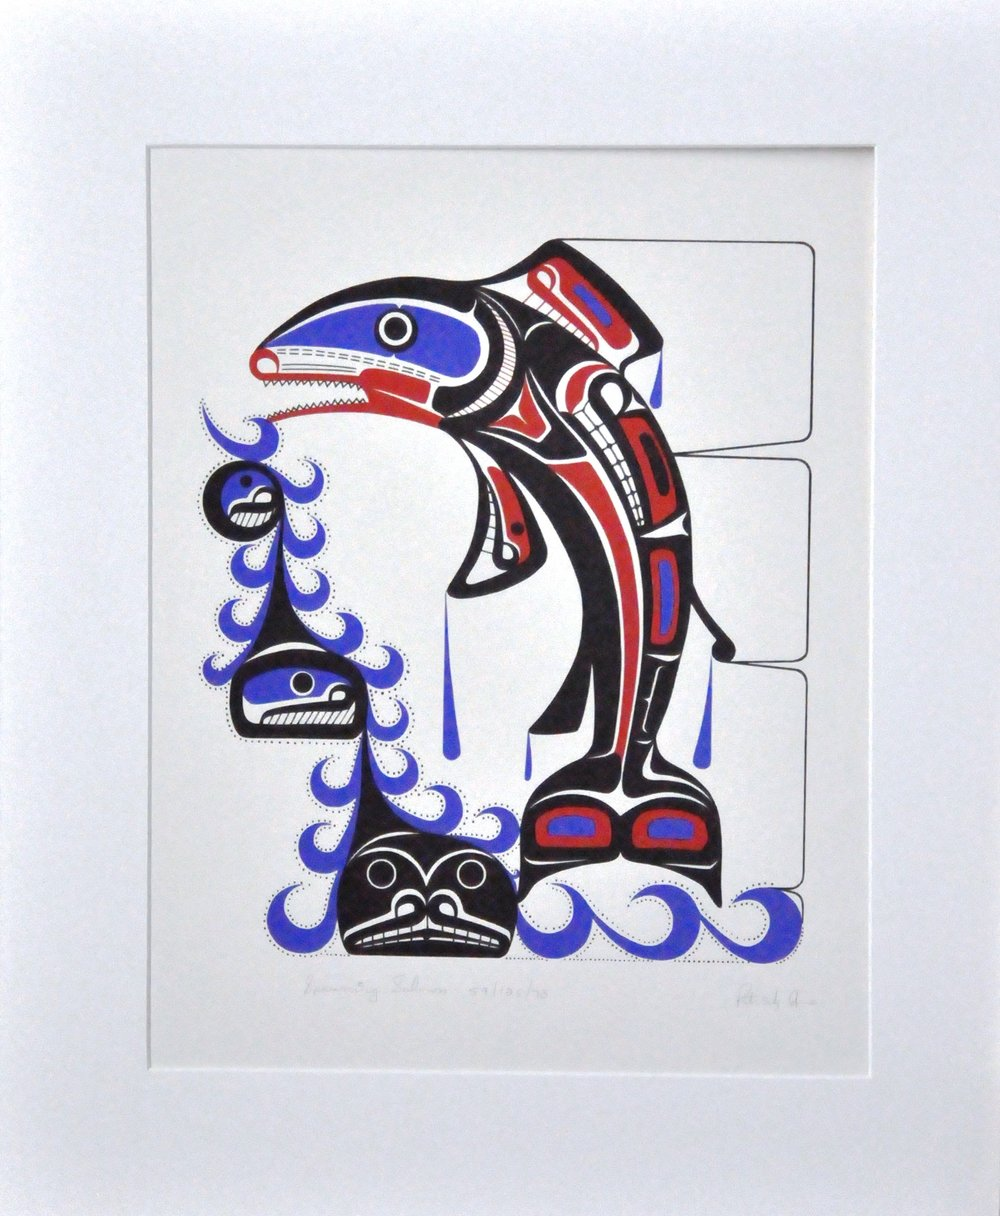 "Spawning Salmon,  1978, Patrick Amos, serigraph, edition 59/125, 20"" x 15 3/4"", 2008.03.02"